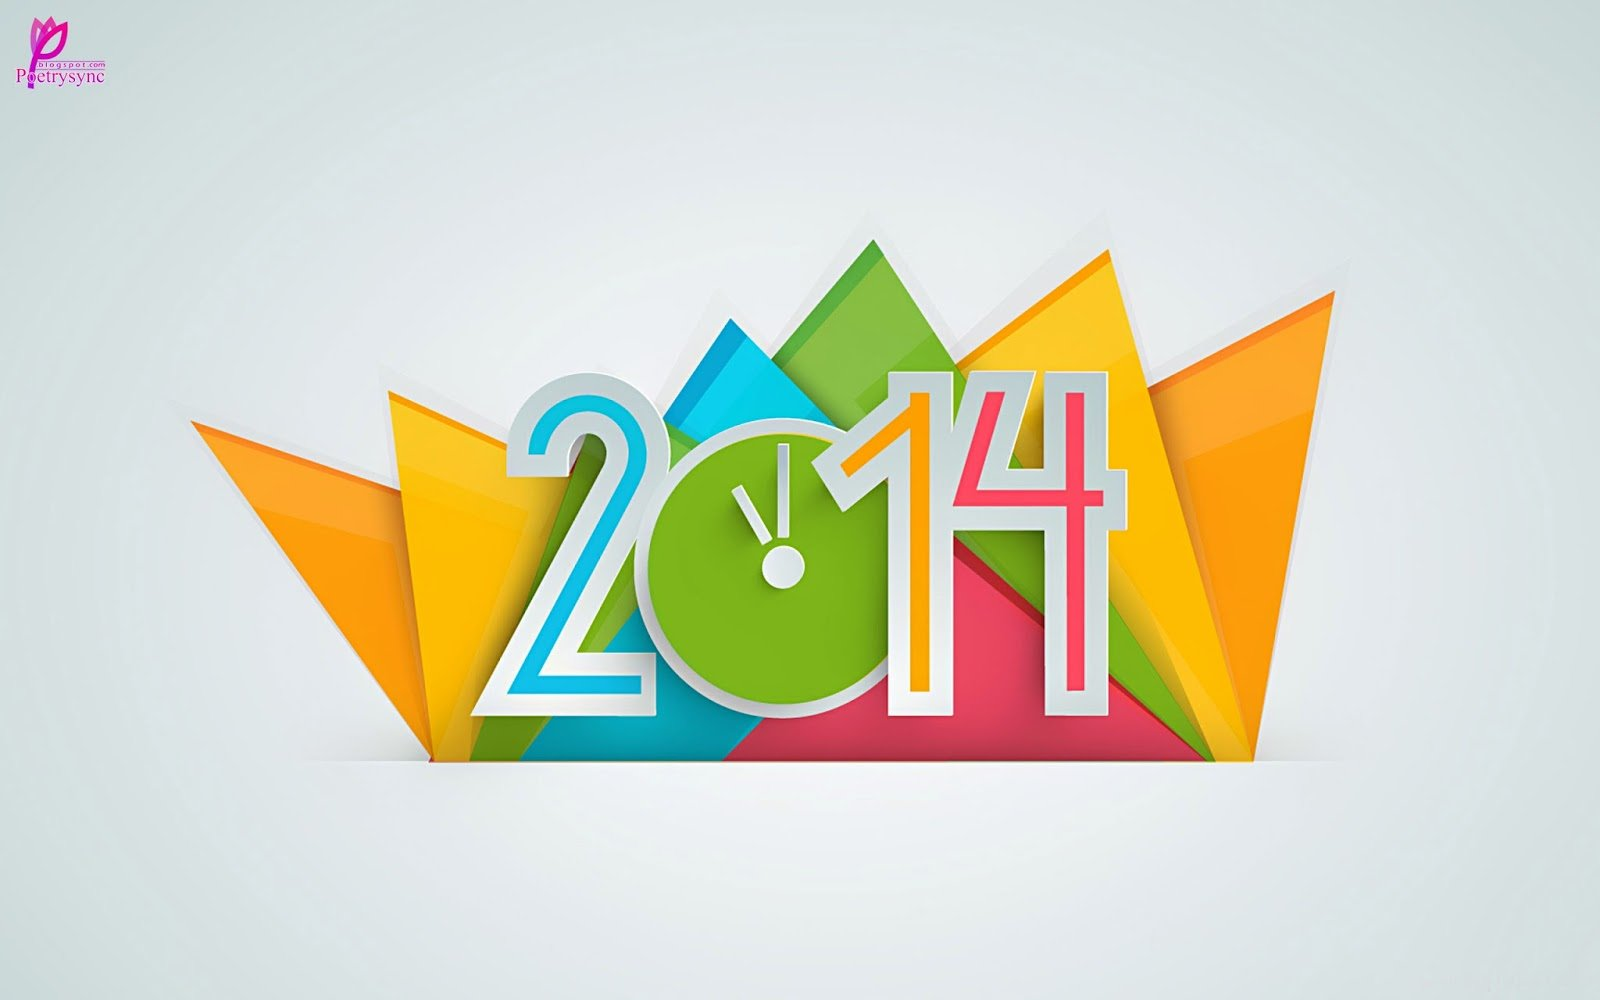 2014 new years resolution quotes quotesgram